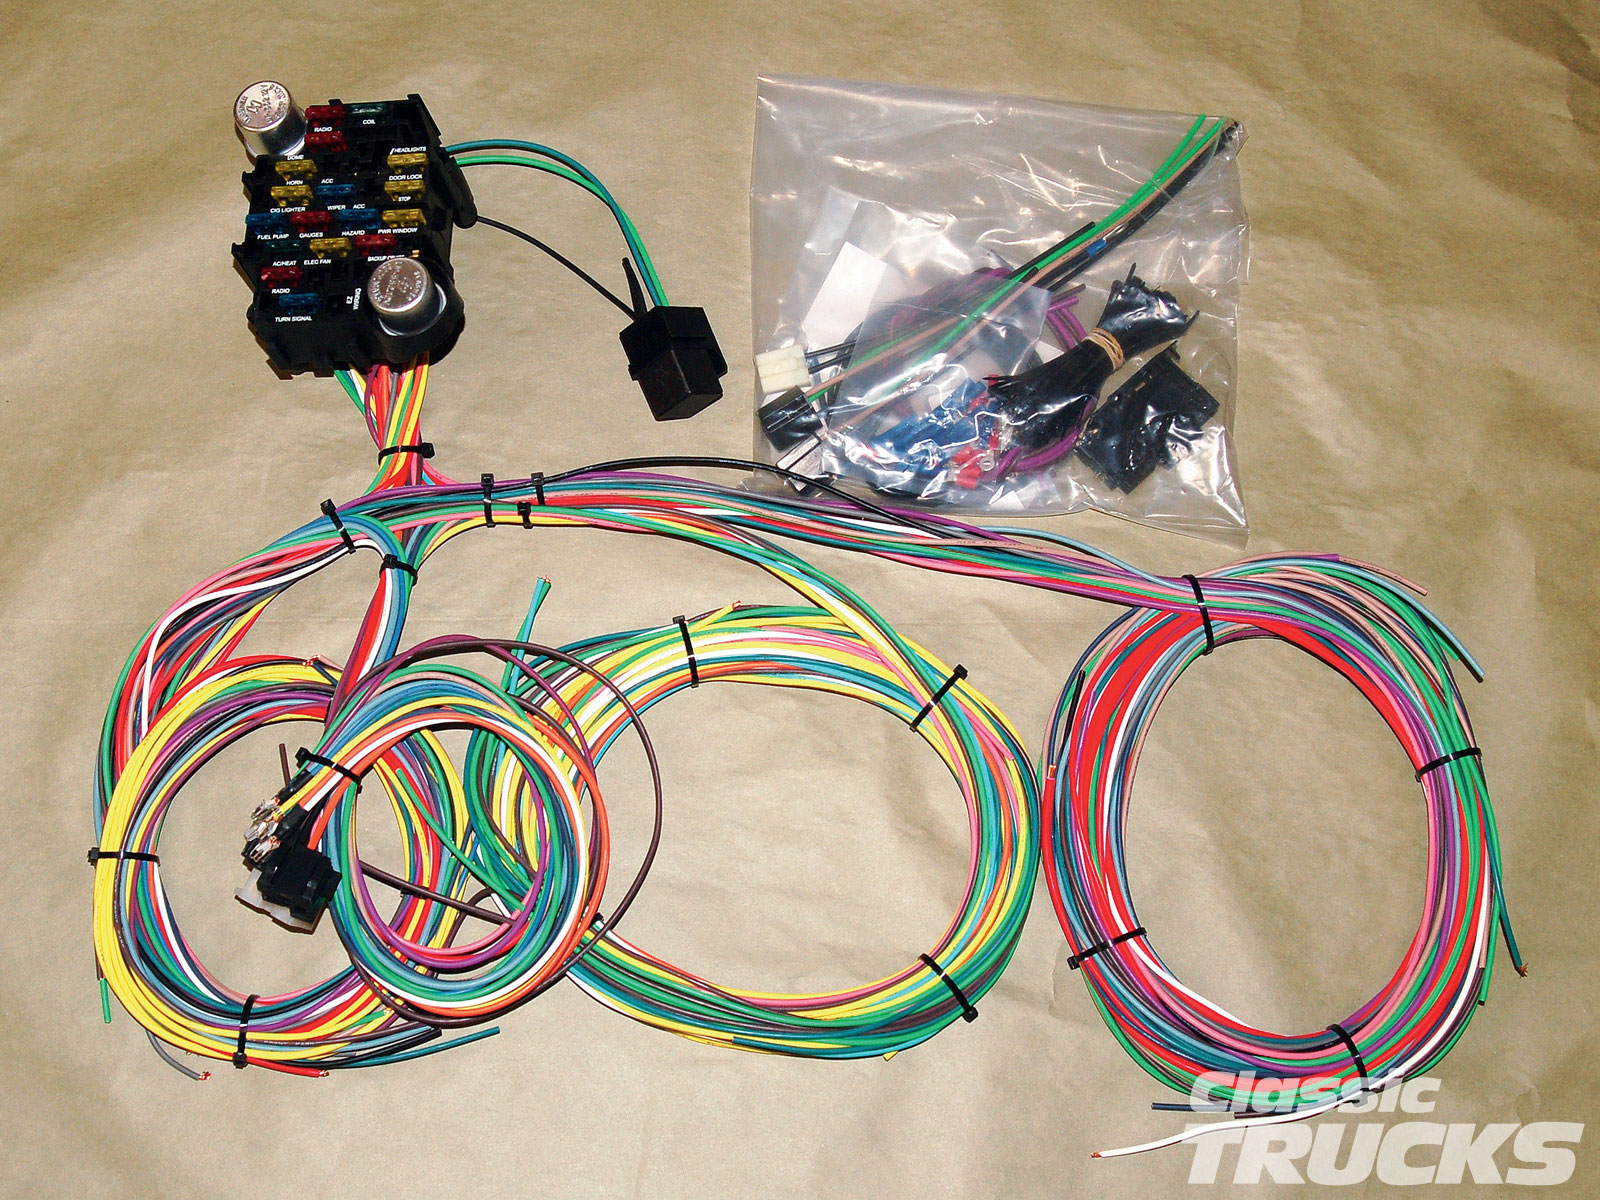 1010clt 02 o aftermarket wiring harness install kit?resize=640%2C480 how much does a wire harness cost to replace hobbiesxstyle how much does it cost to replace a wiring harness at crackthecode.co